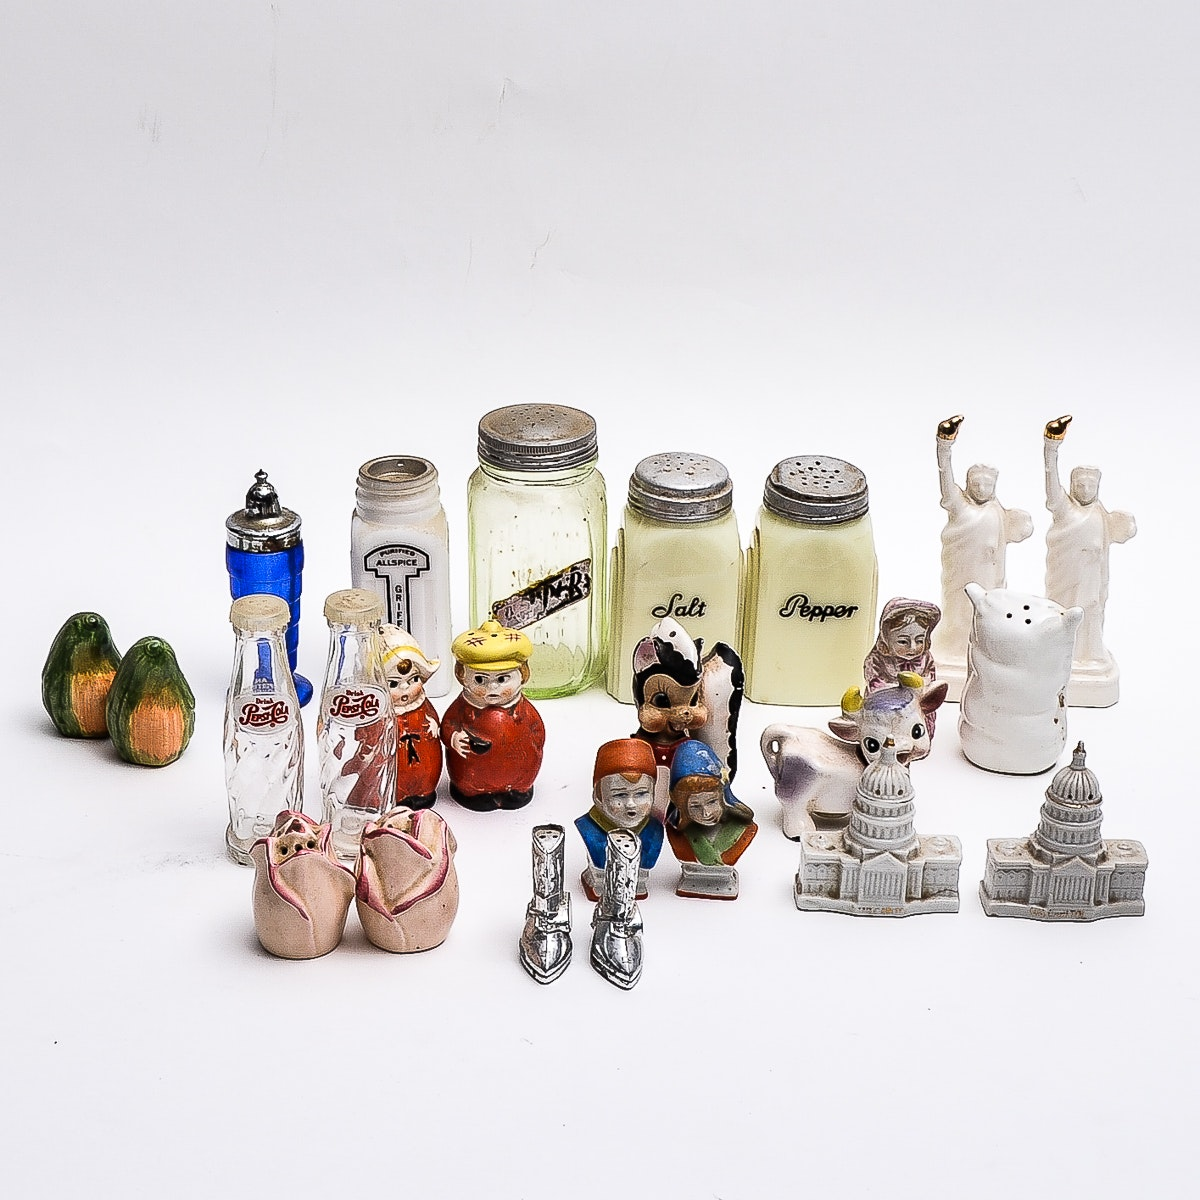 Collection of Vintage Salt and Pepper Shakers